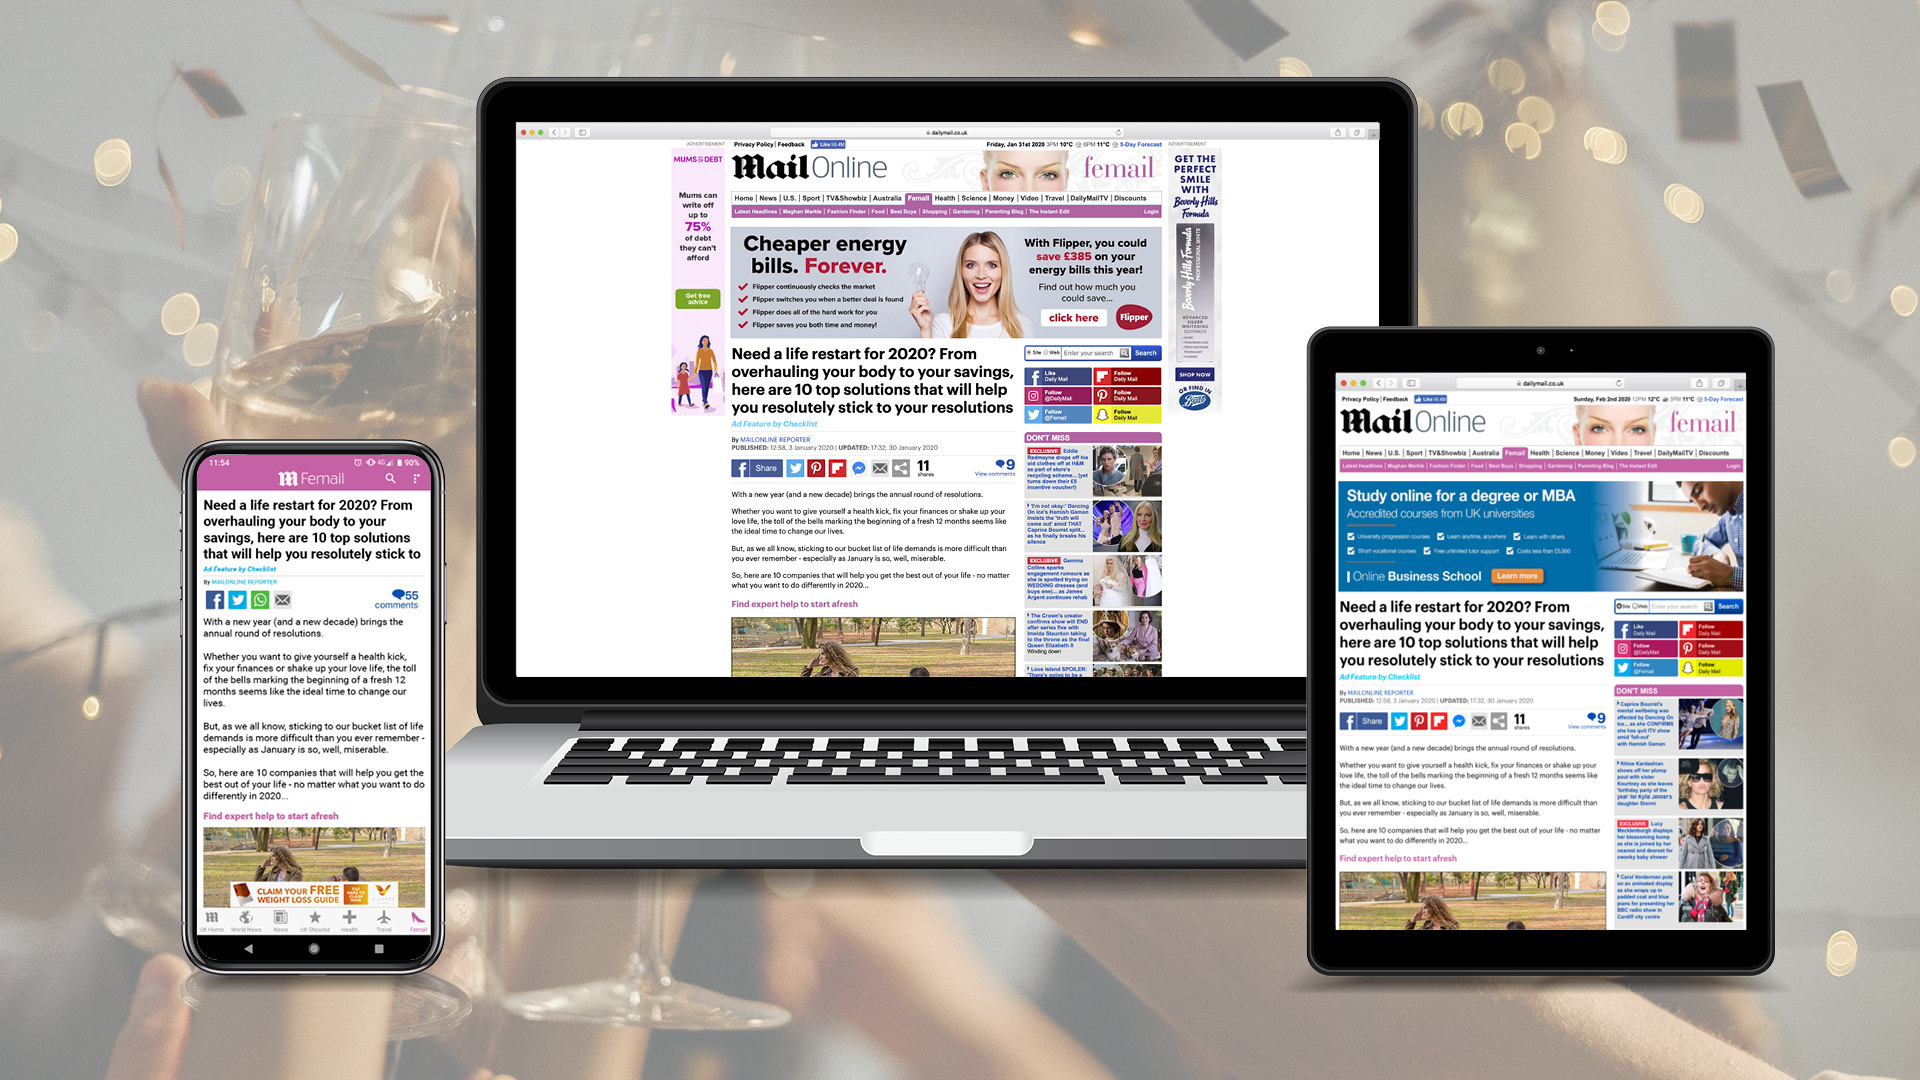 Latest MailOnline Feature Will Inspire Your New Year's Resolutions